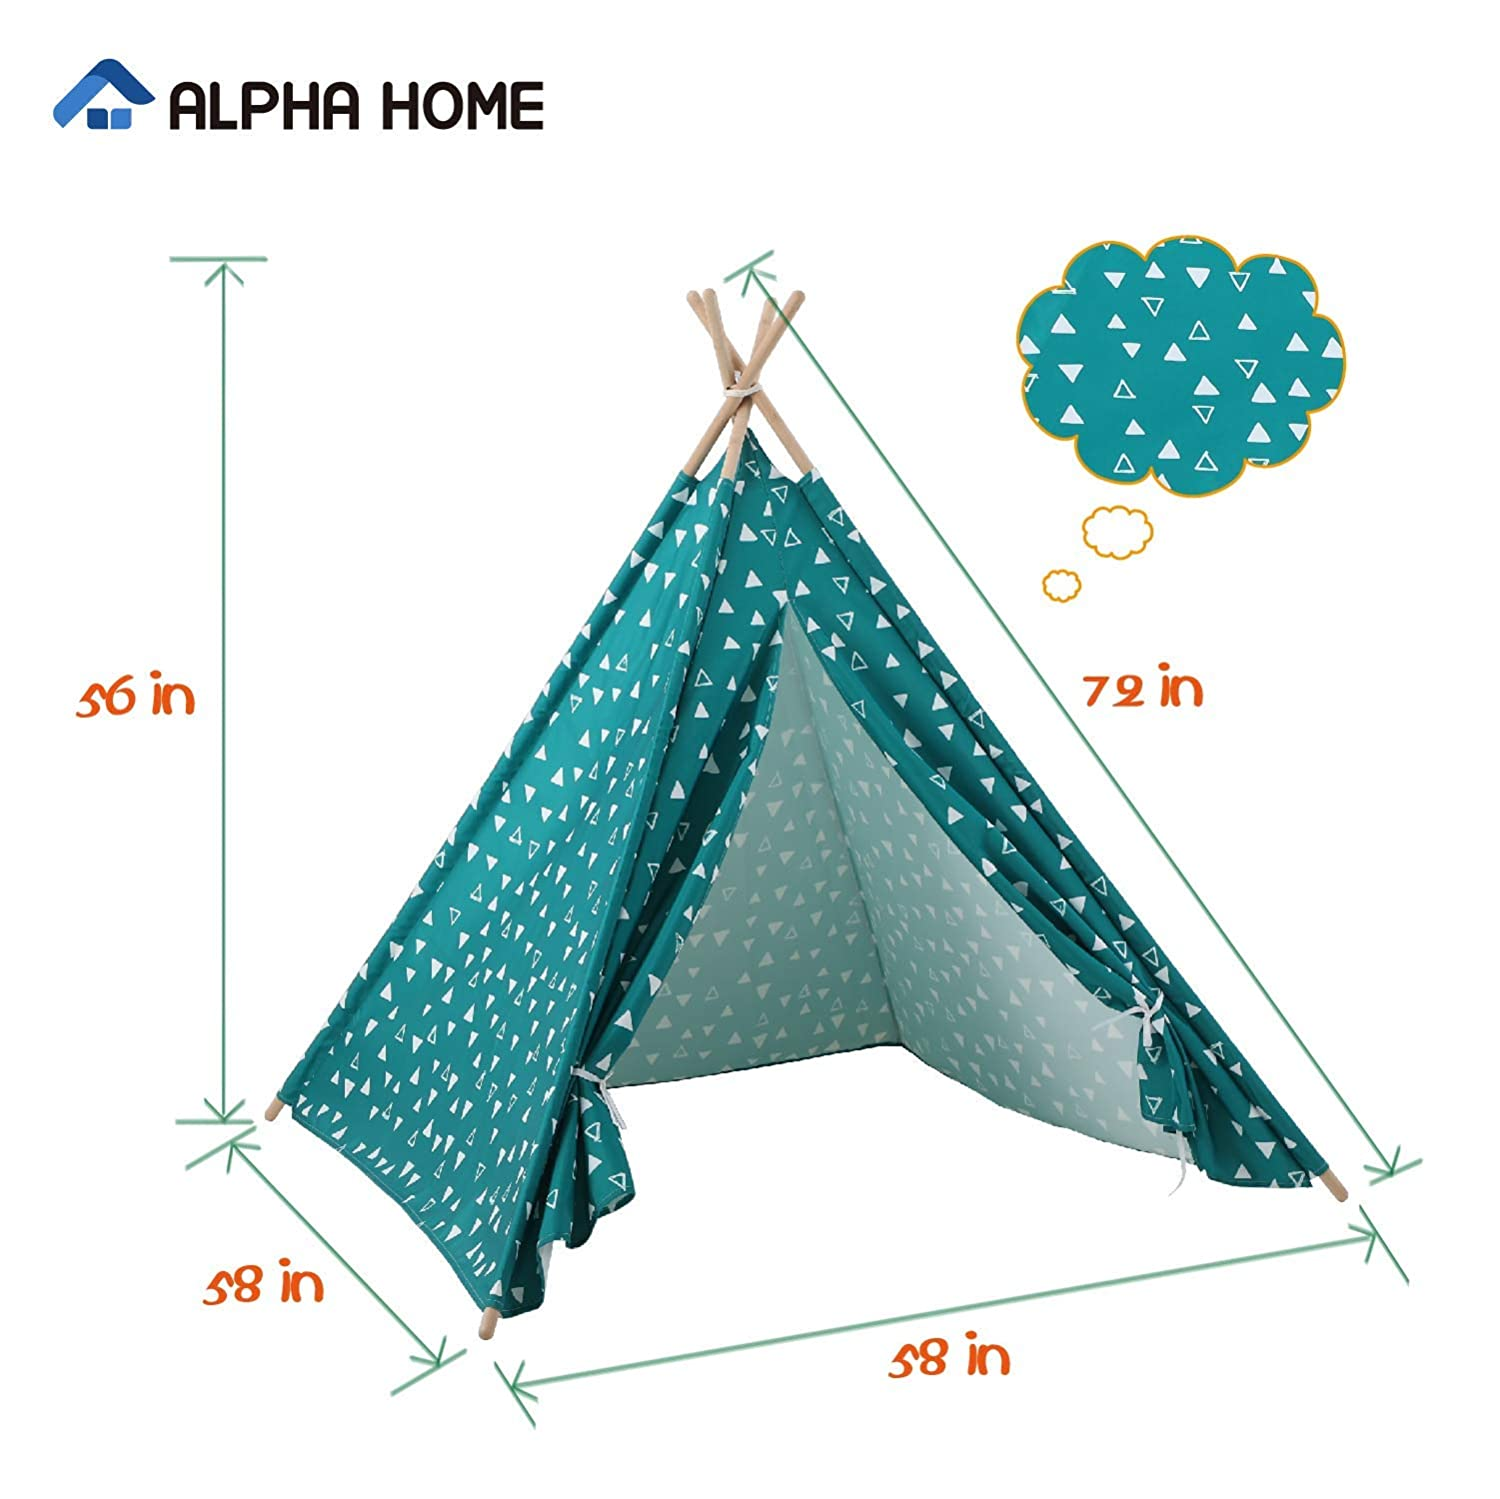 58 x 58 x 56 ALPHA HOME Teepee Tent for Kids Canvas Childs Play Teepee Tent Indoor /& Outdoor with Carry Bag